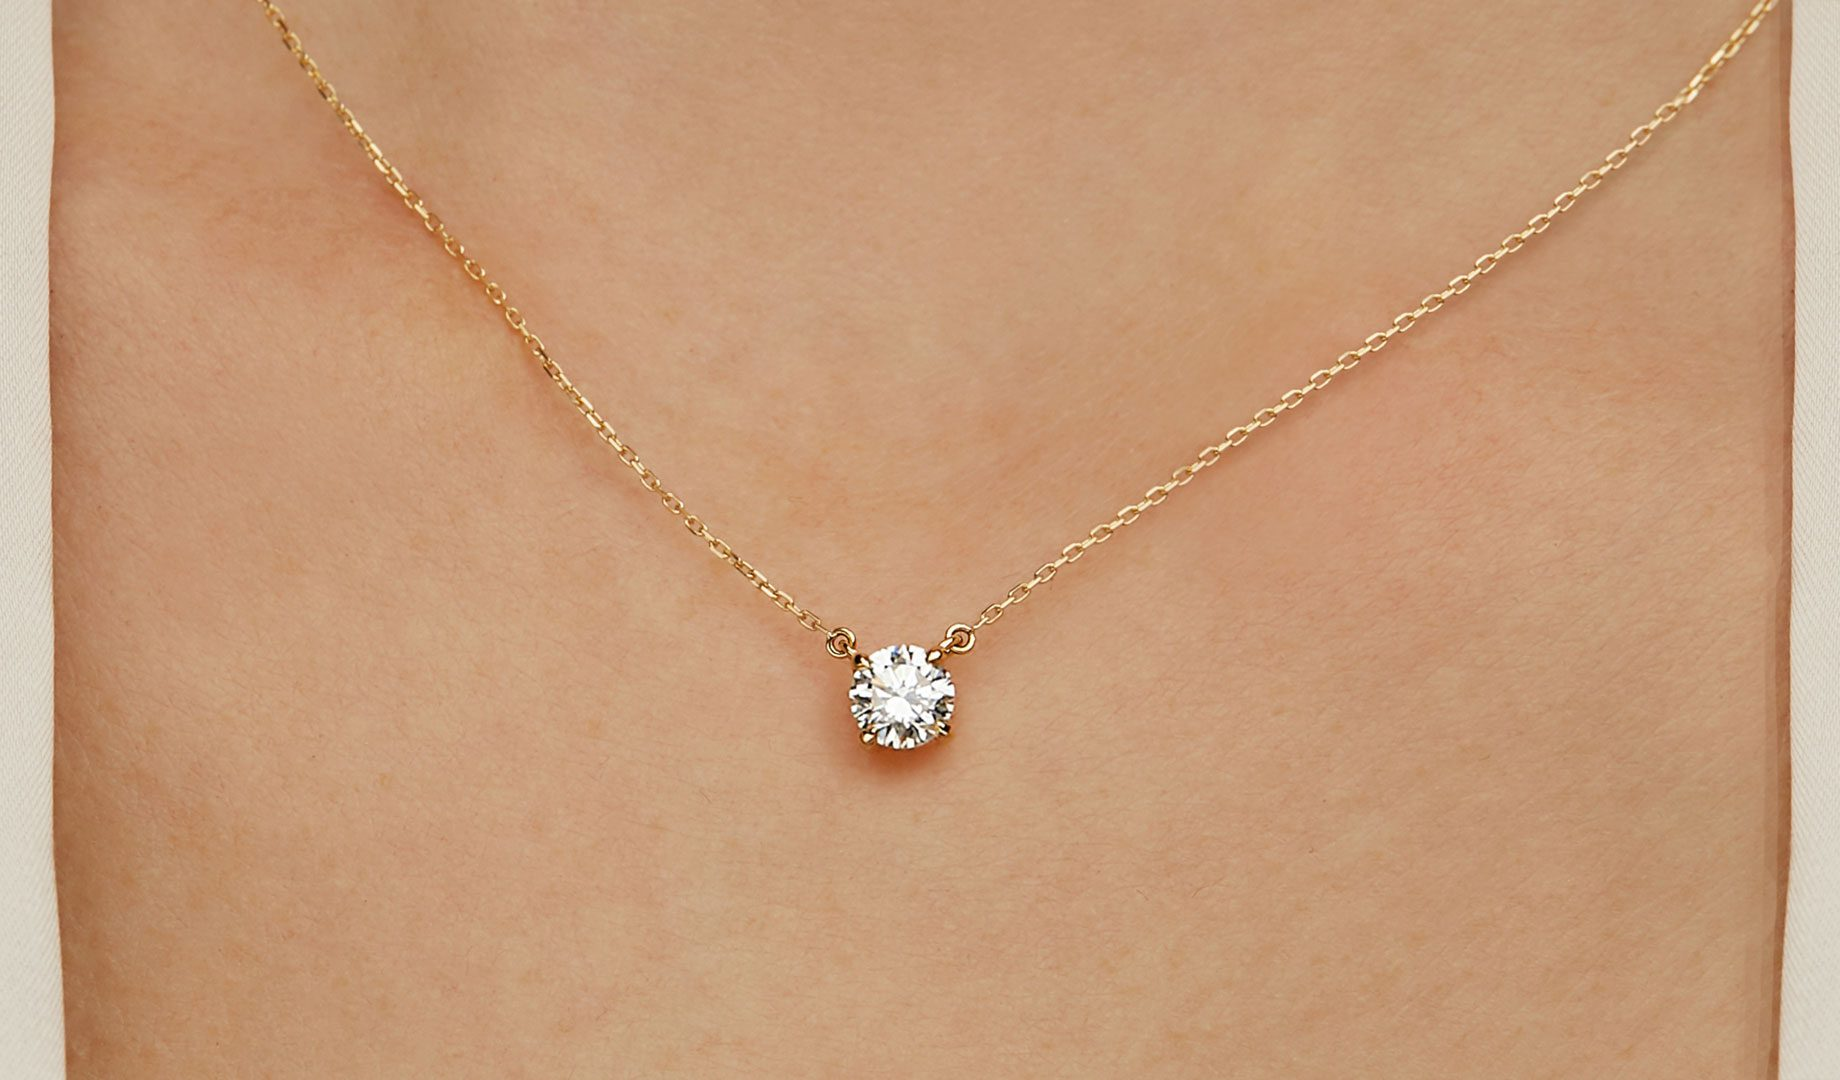 Lab Grown Diamond Pendant Necklace in 18k Yellow Gold from Oui by Jean Dousset